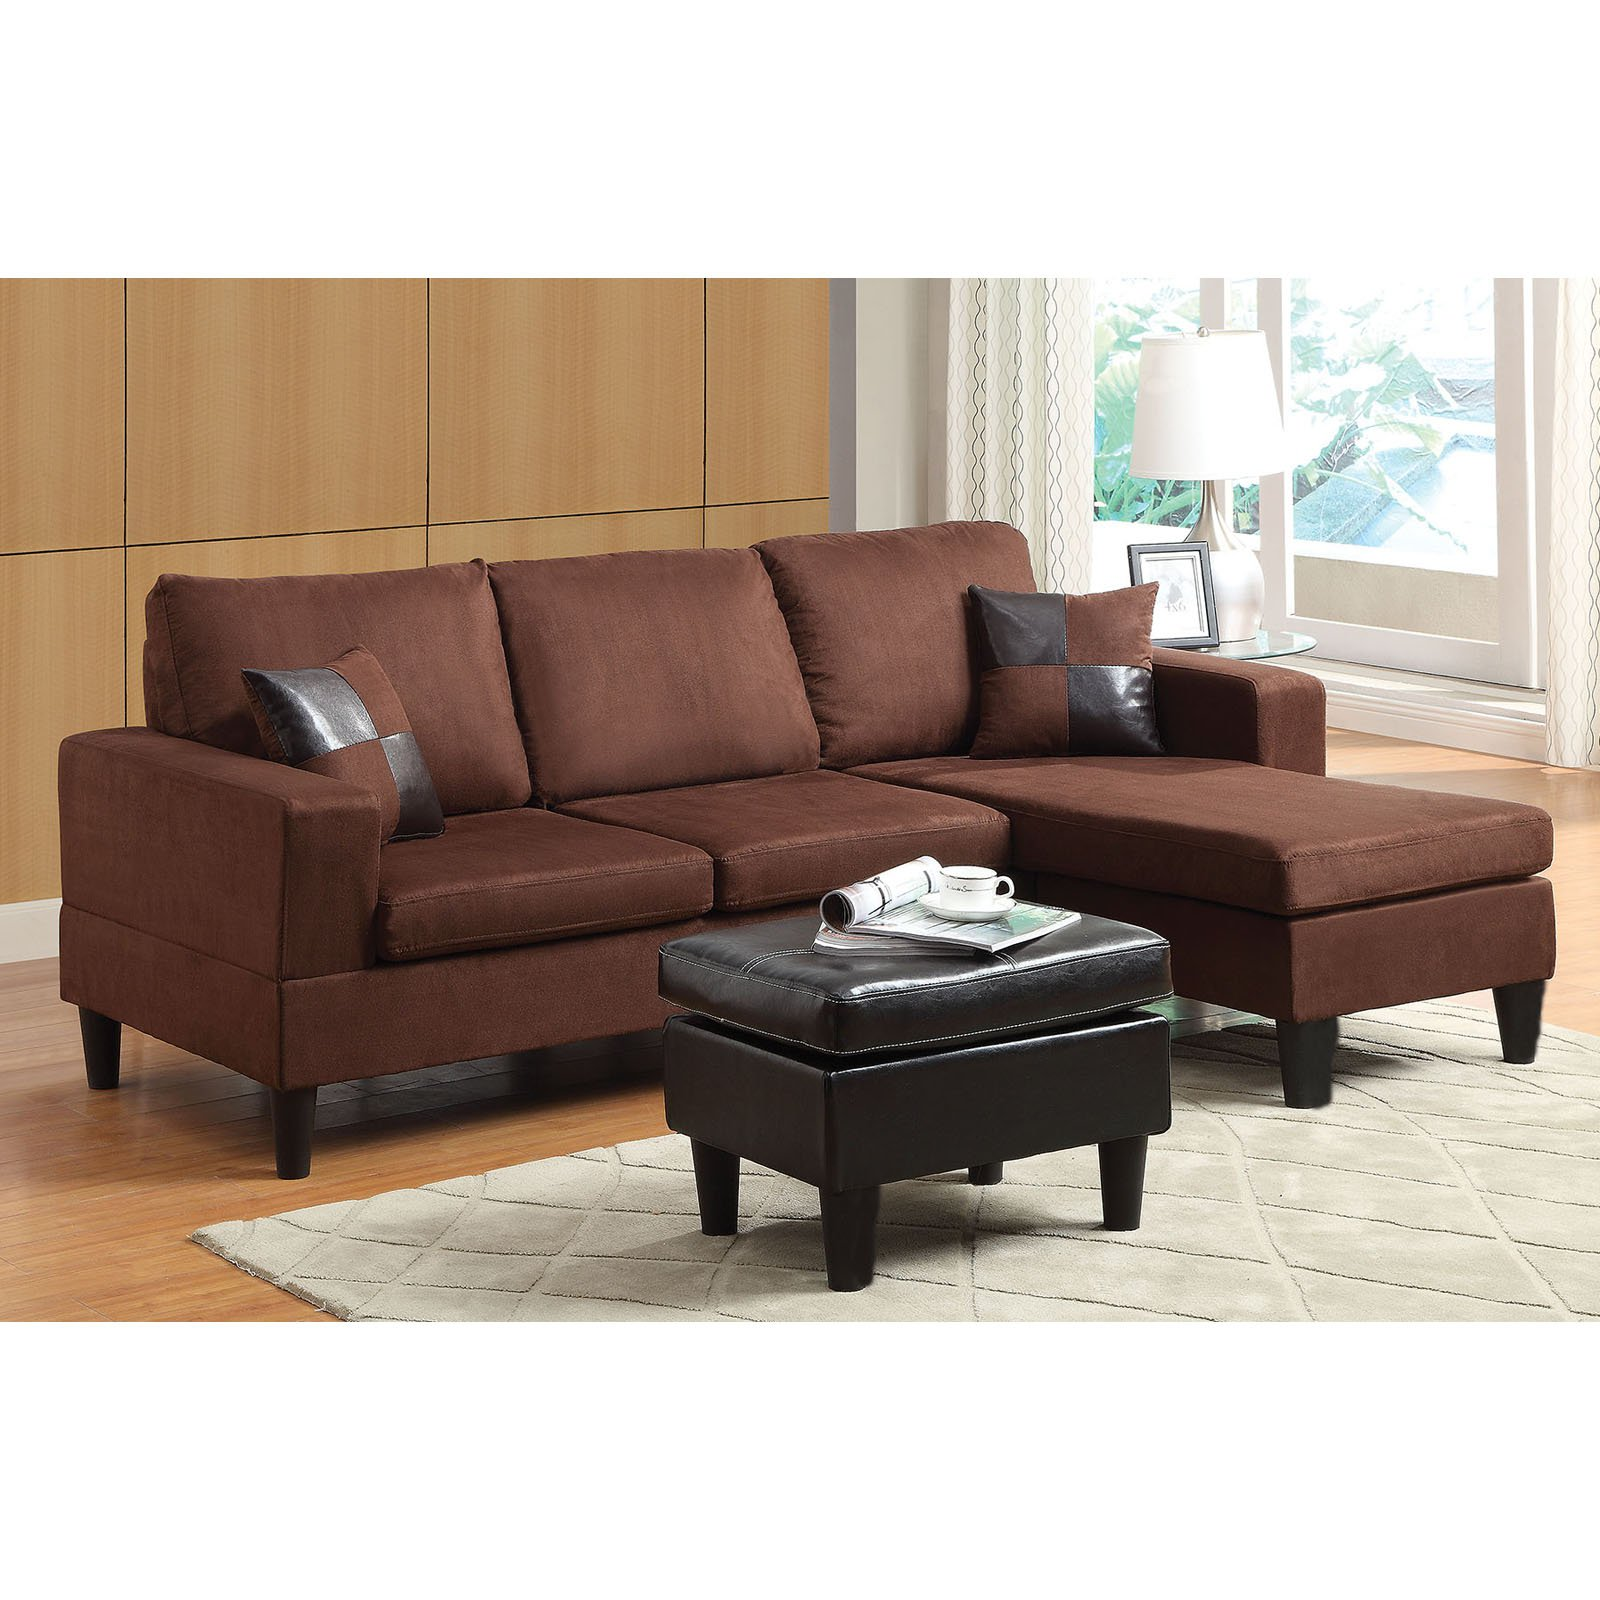 ACME Robyn Reversible Sectional Sofa with Ottoman & 2 Pillows, Chocolate Microfiber & Espresso PU by Acme Furniture